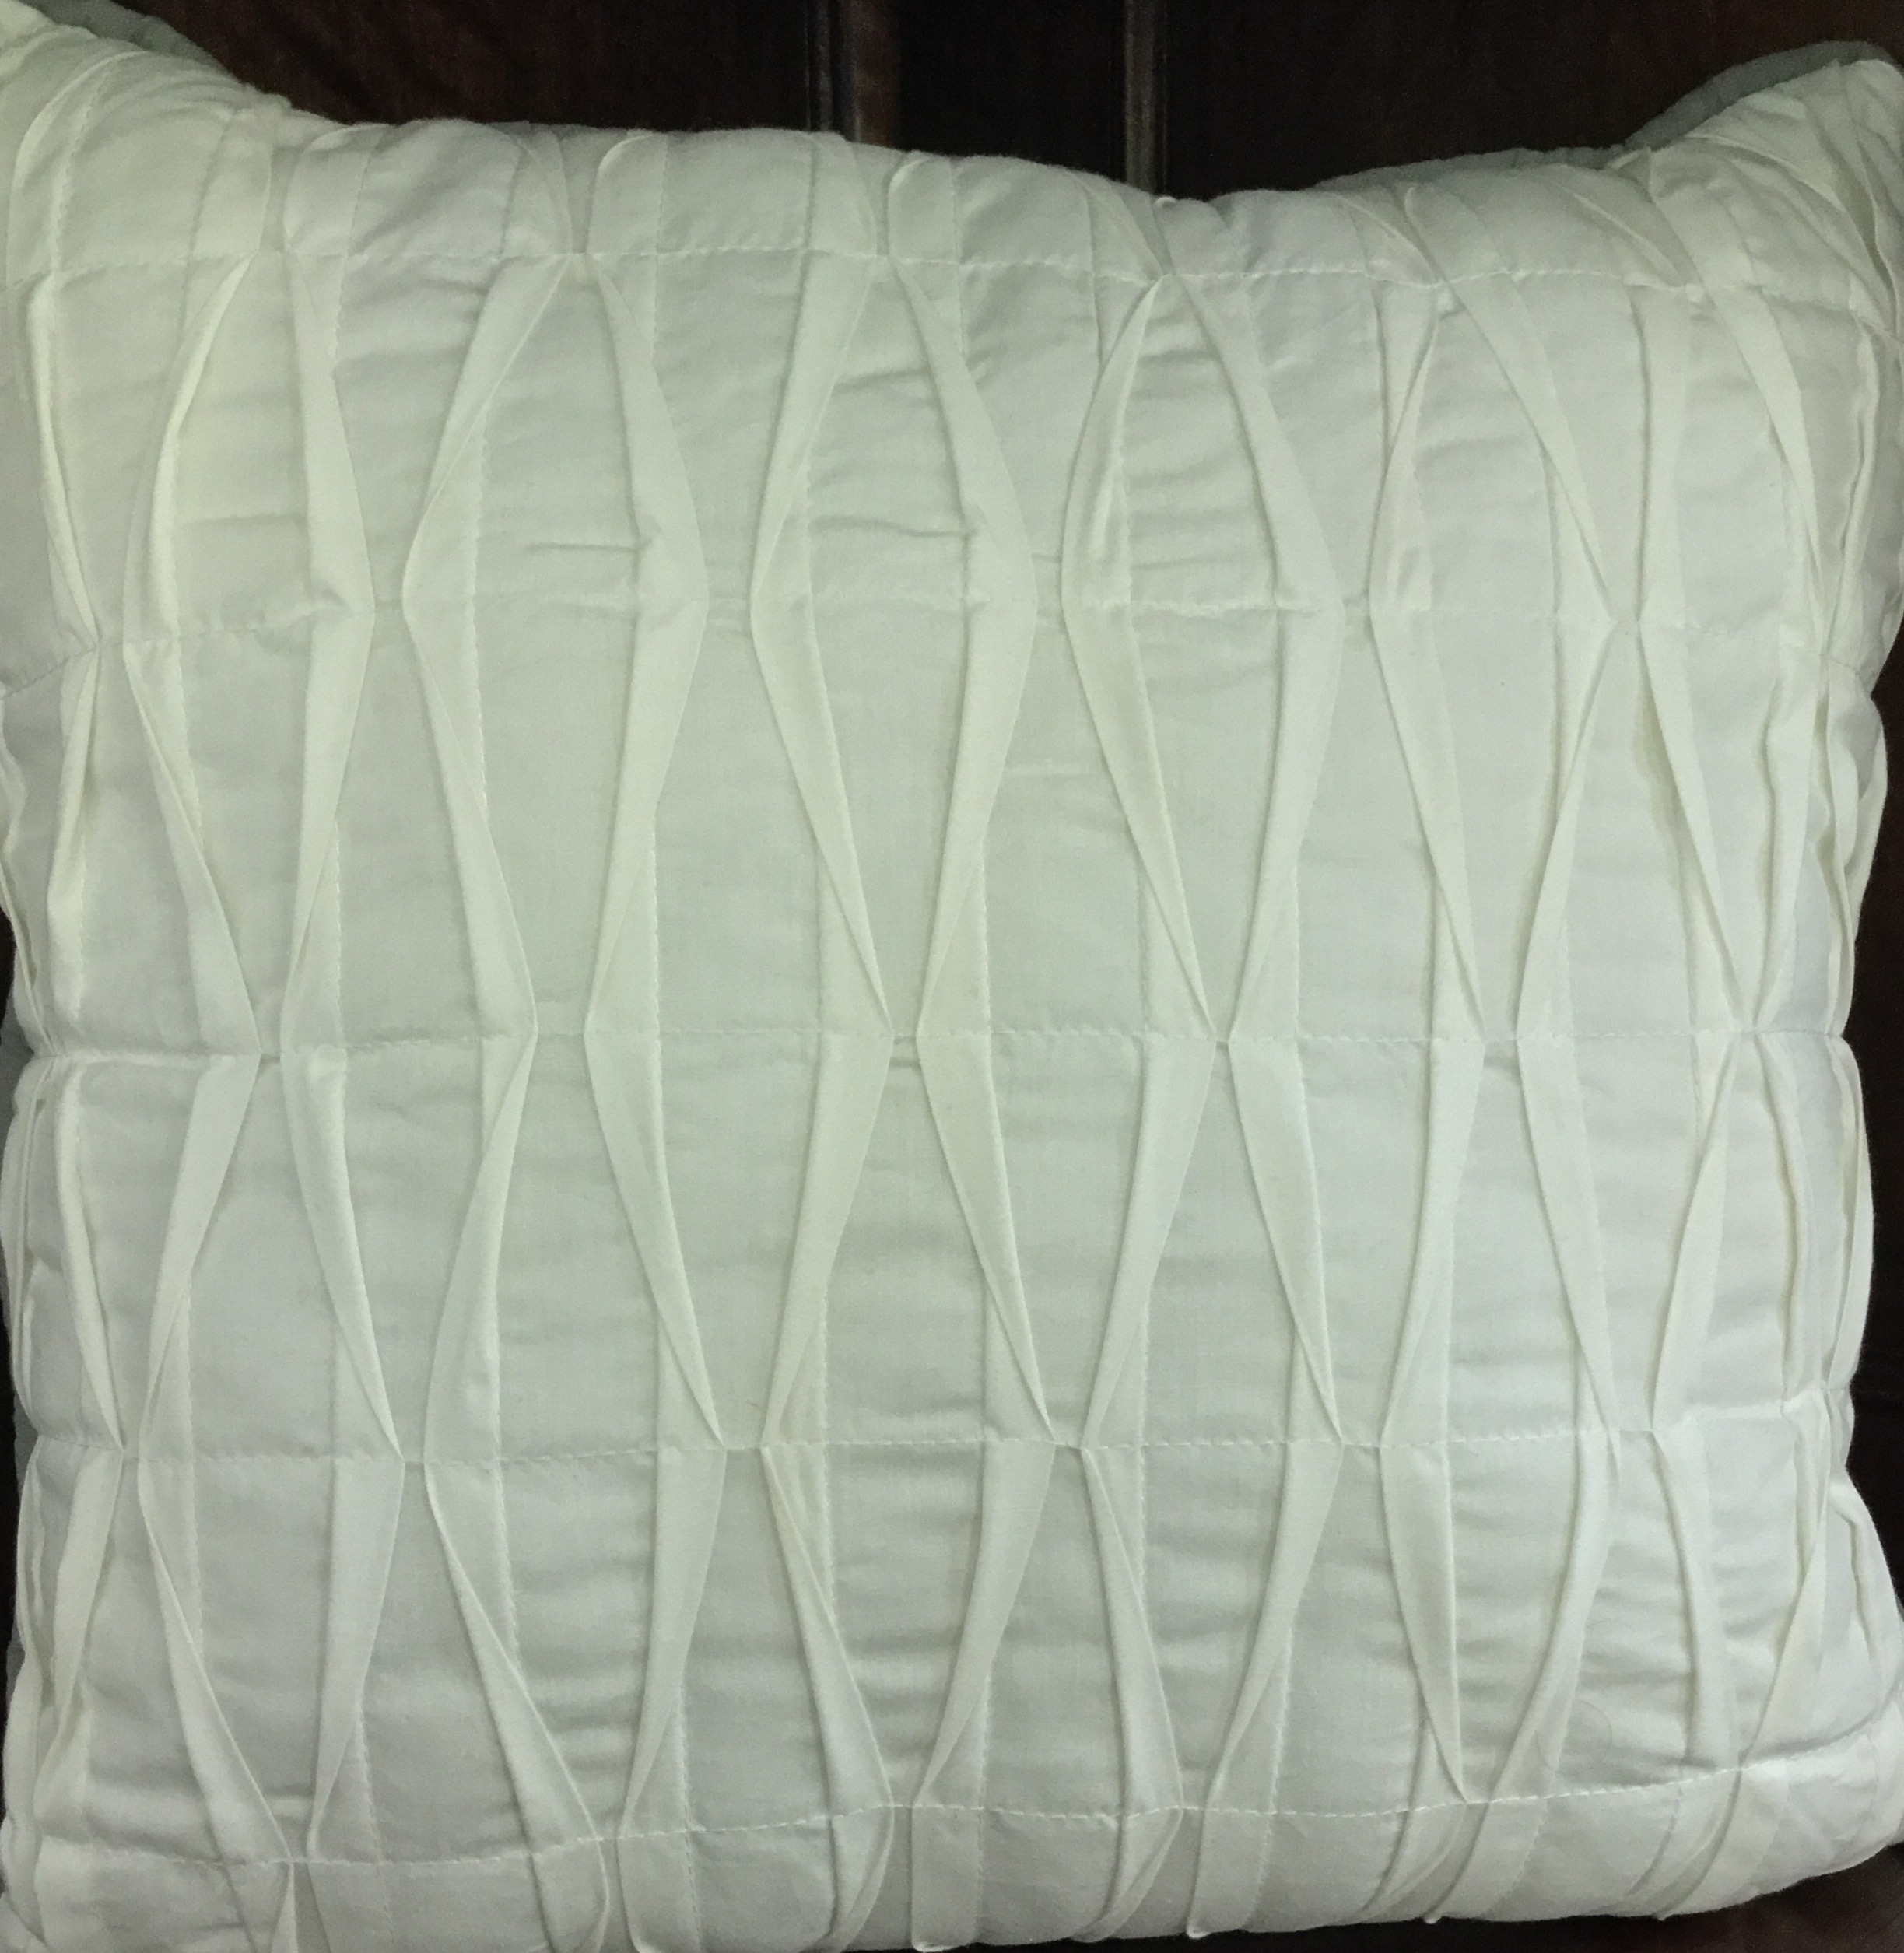 Off-White Pillow with Banding